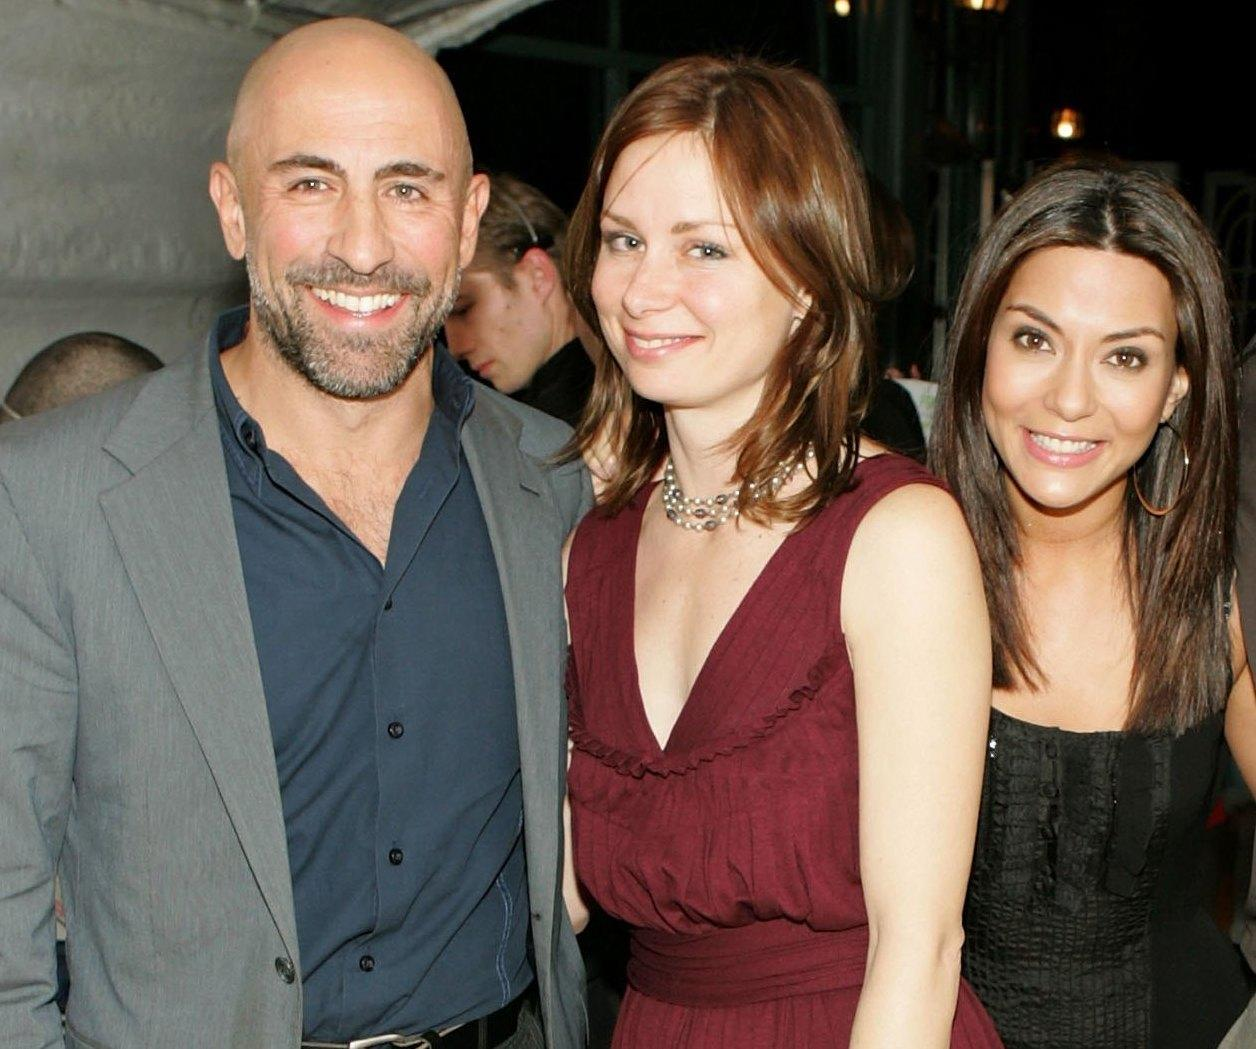 Carlo Rota, Mary Lynn Rajskub and Marisol Nichols at the Church of Scientology's Christmas Stories XIV